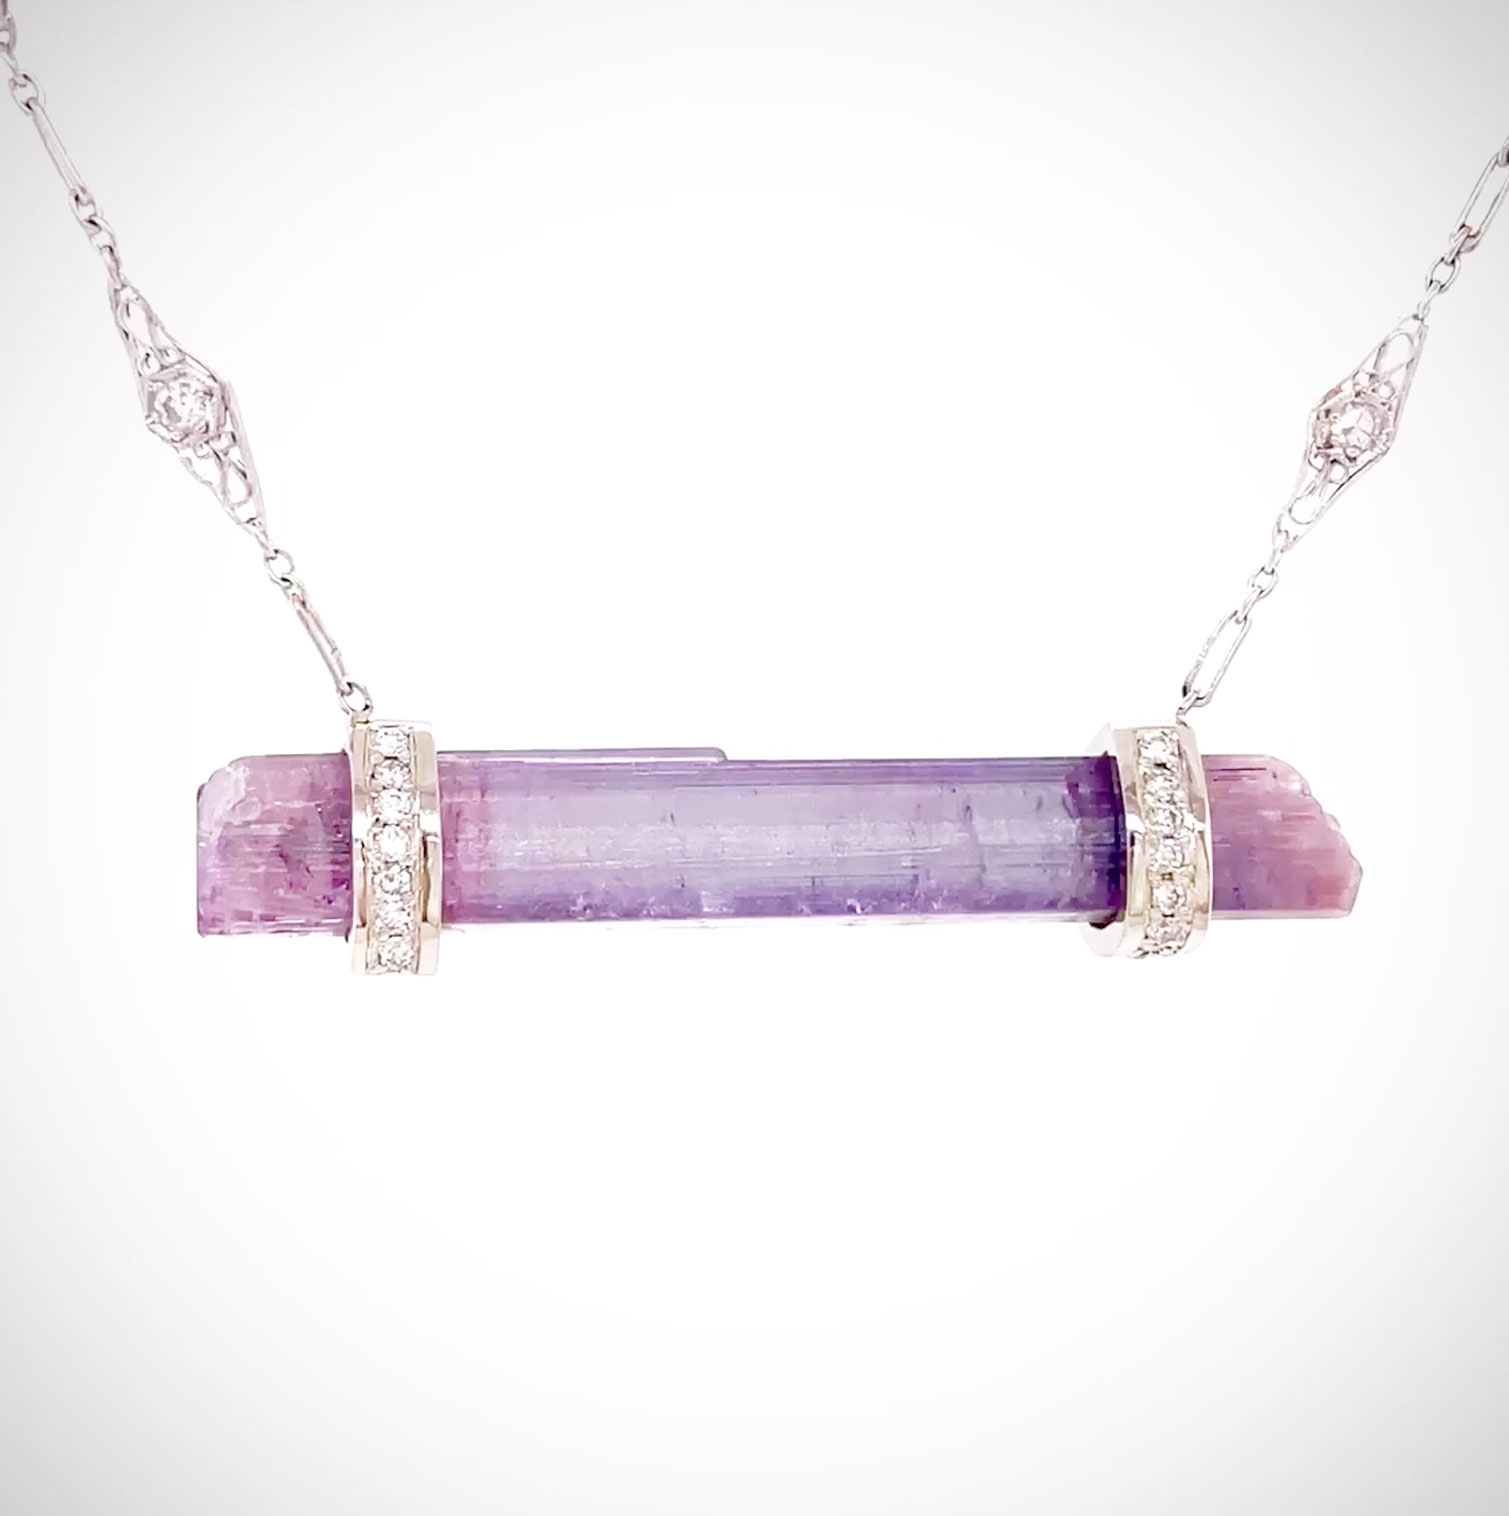 Incredibly rare Mozambique lavender Tourmaline crystal framed with 14K white gold Diamond collars and suspended from a vintage platinum Diamond chain